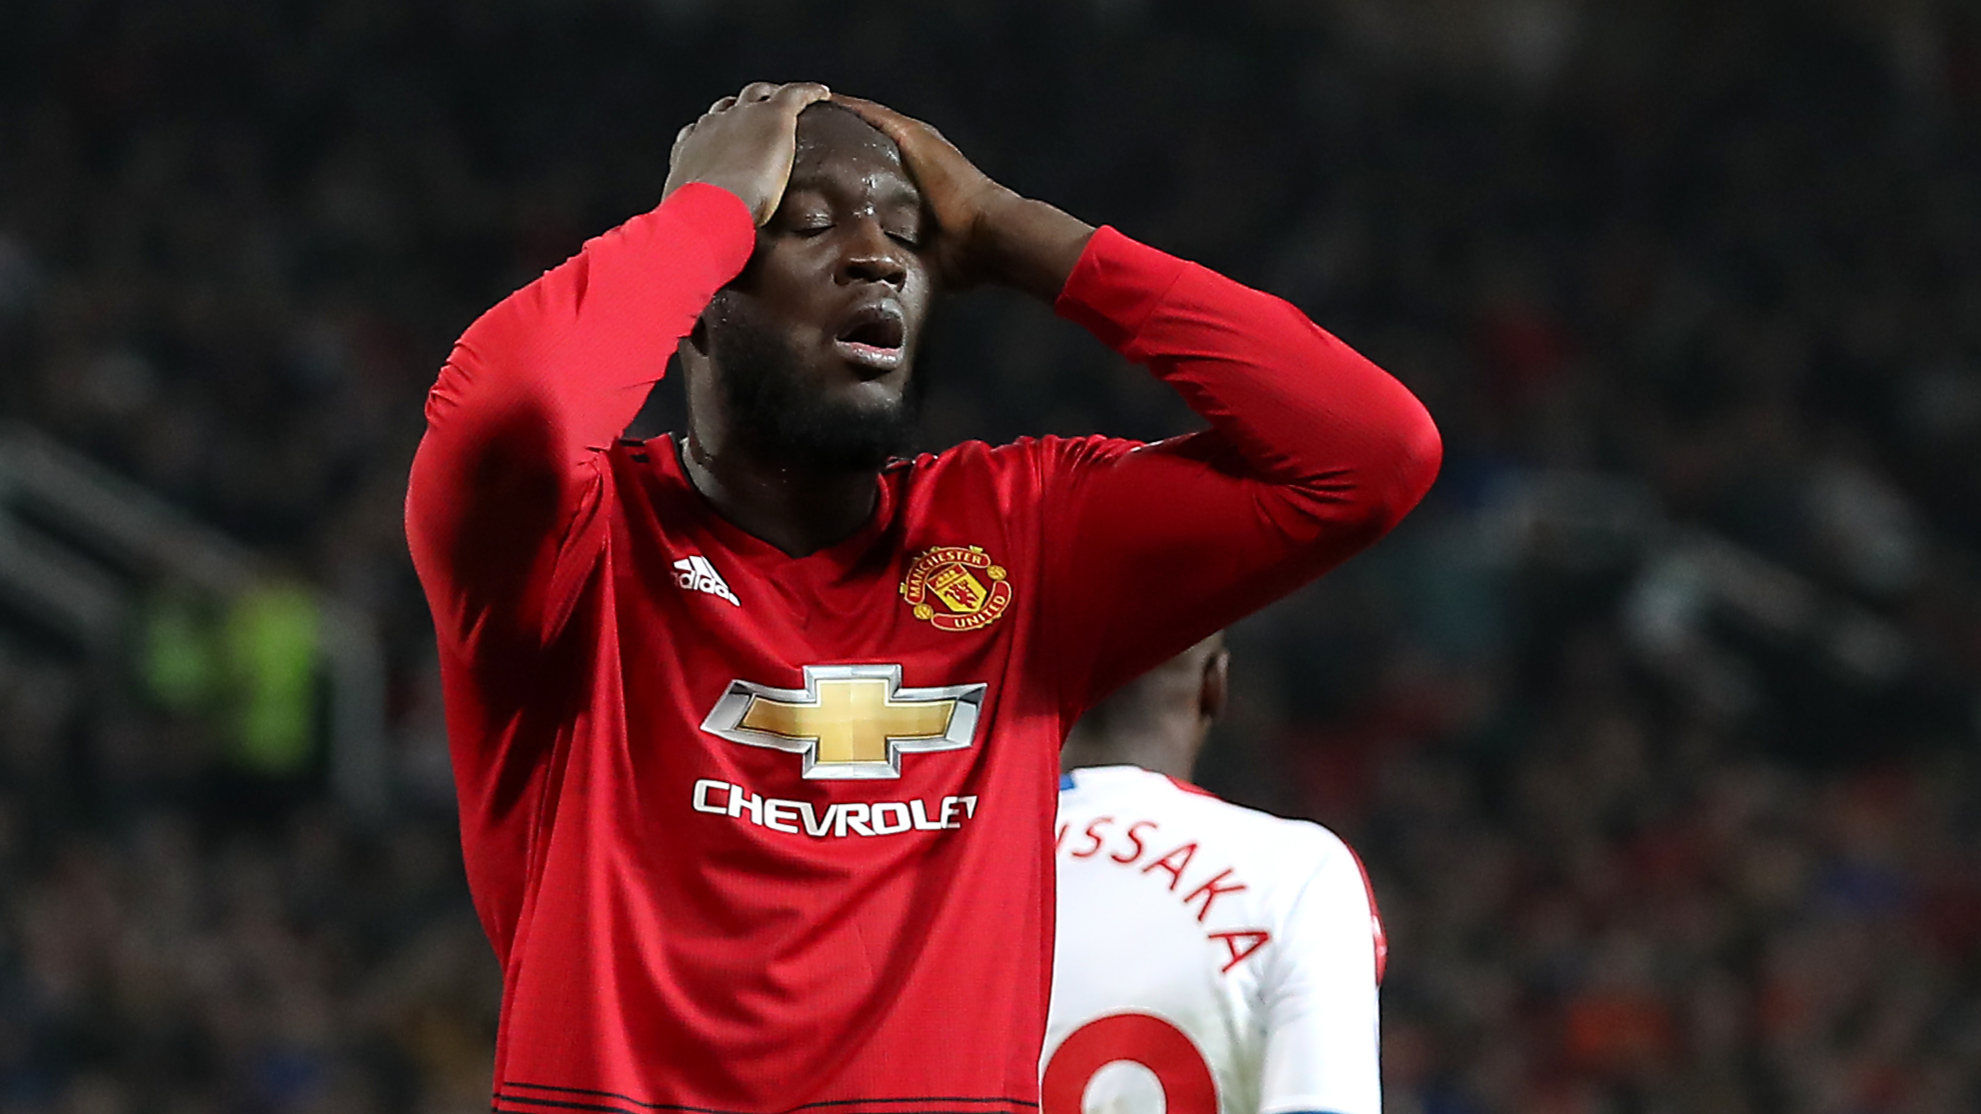 Romelu Lukaku Voted The Worst Player In The Premier League